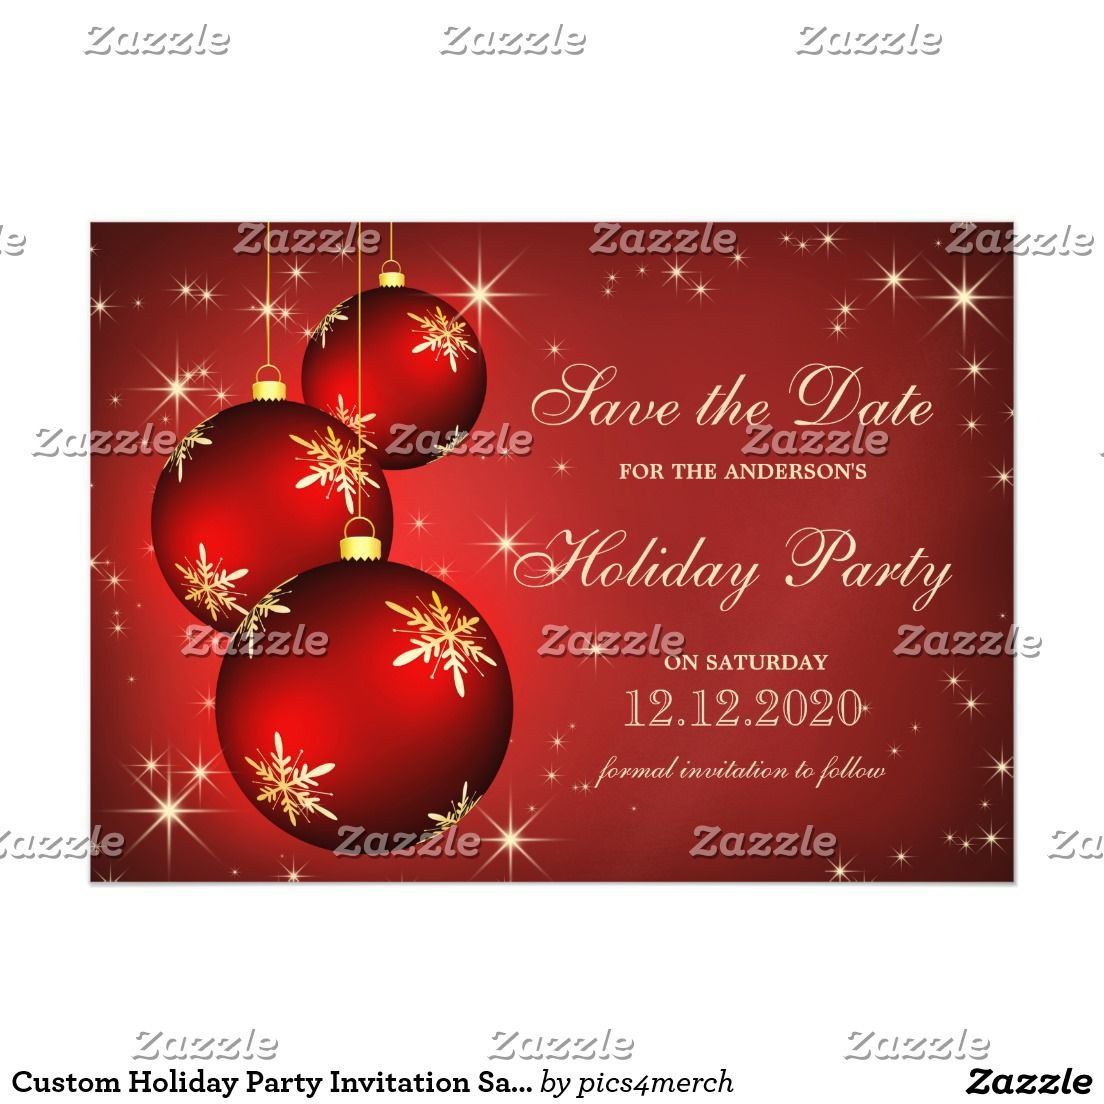 Custom Holiday Party Invitation Save The Date | Christmas Party ...